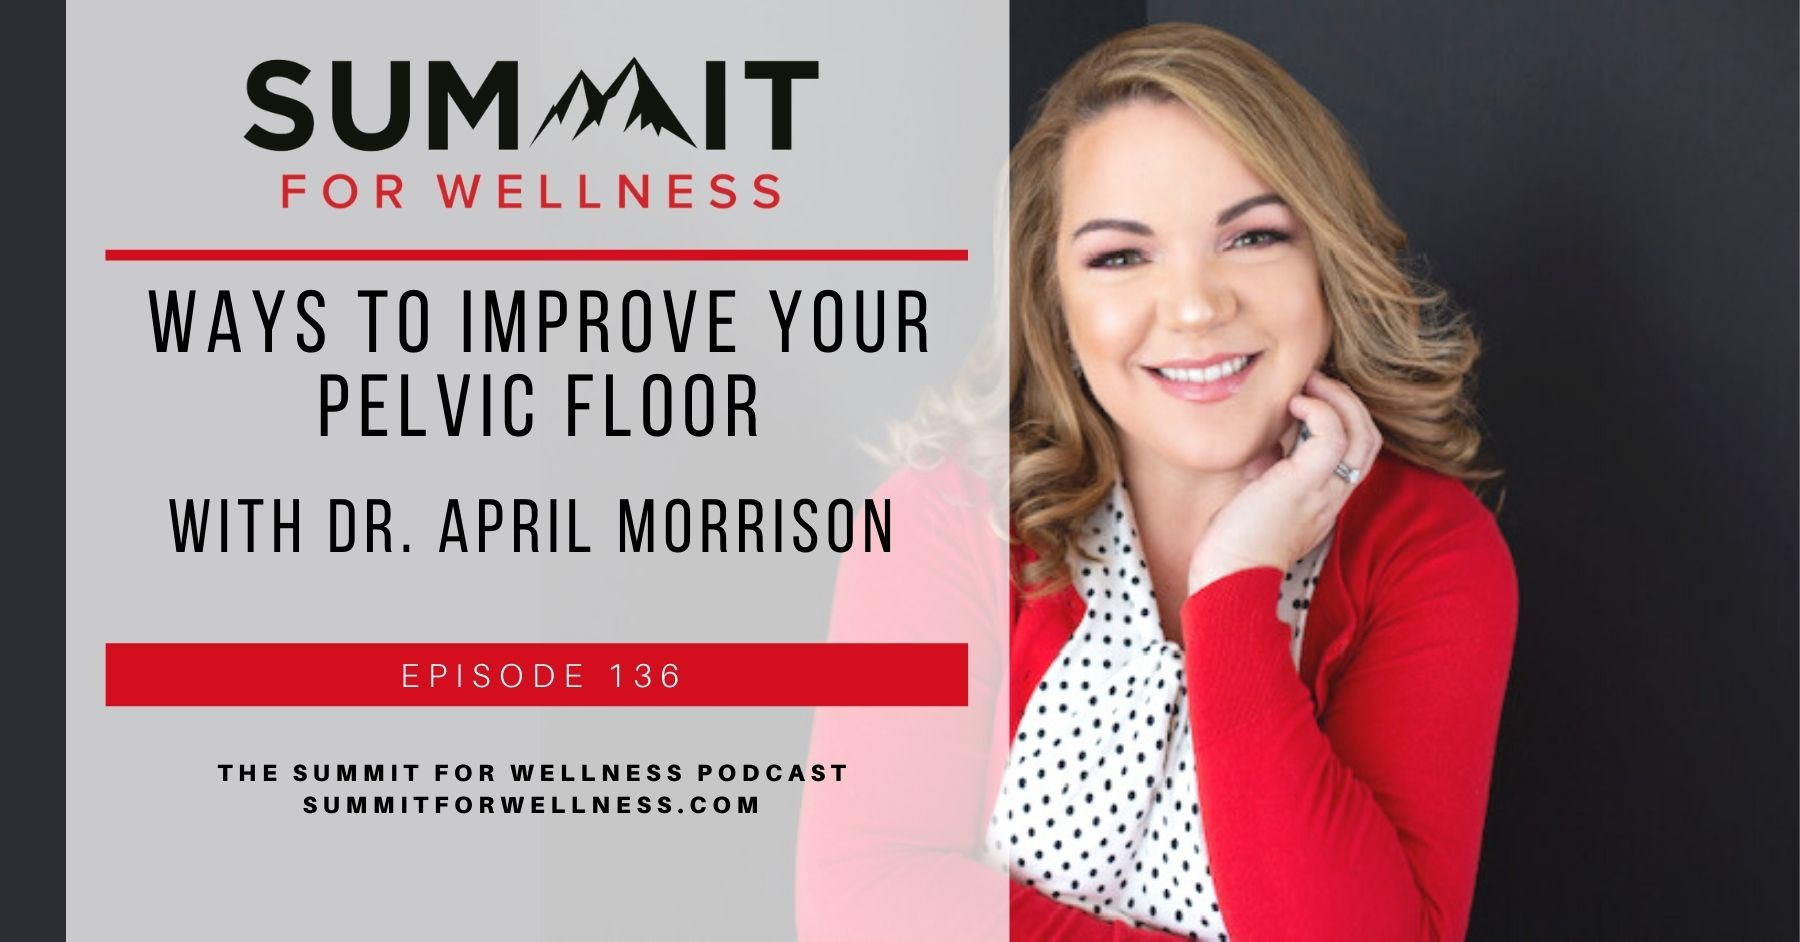 Dr. April Morrison teaches how to take care of your pelvic floor